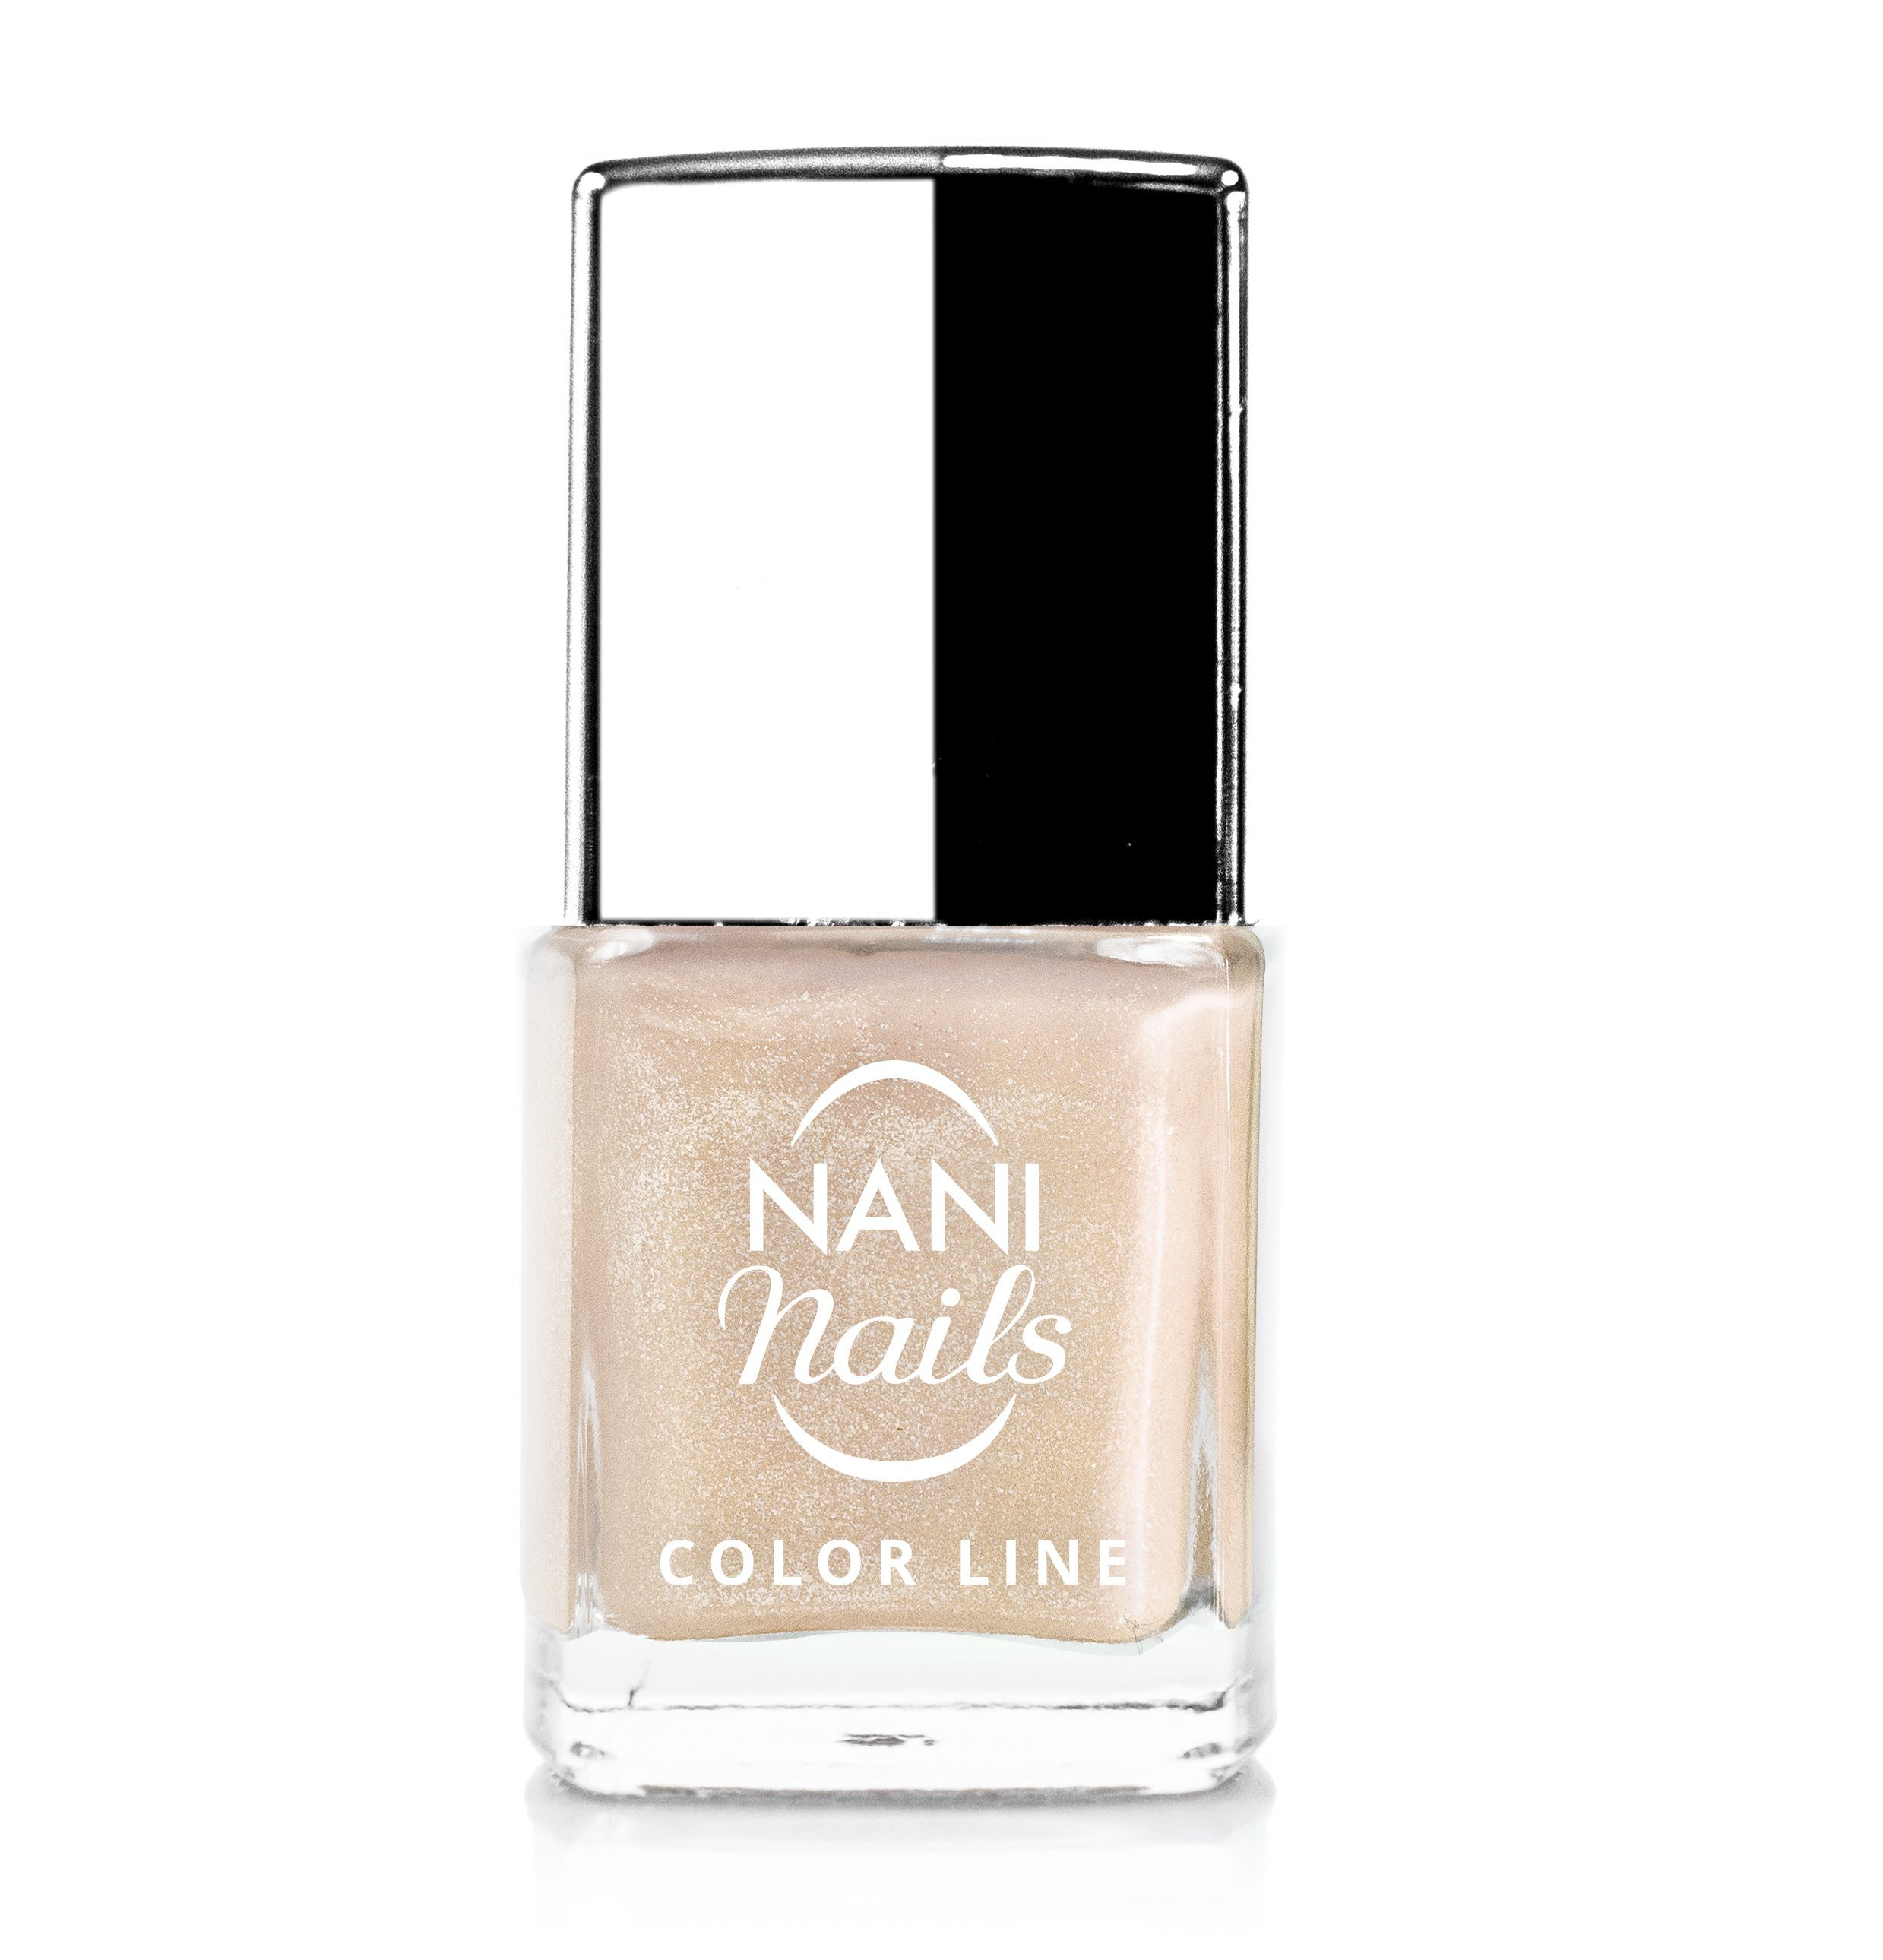 NANI lak Color Line 9 ml - 43